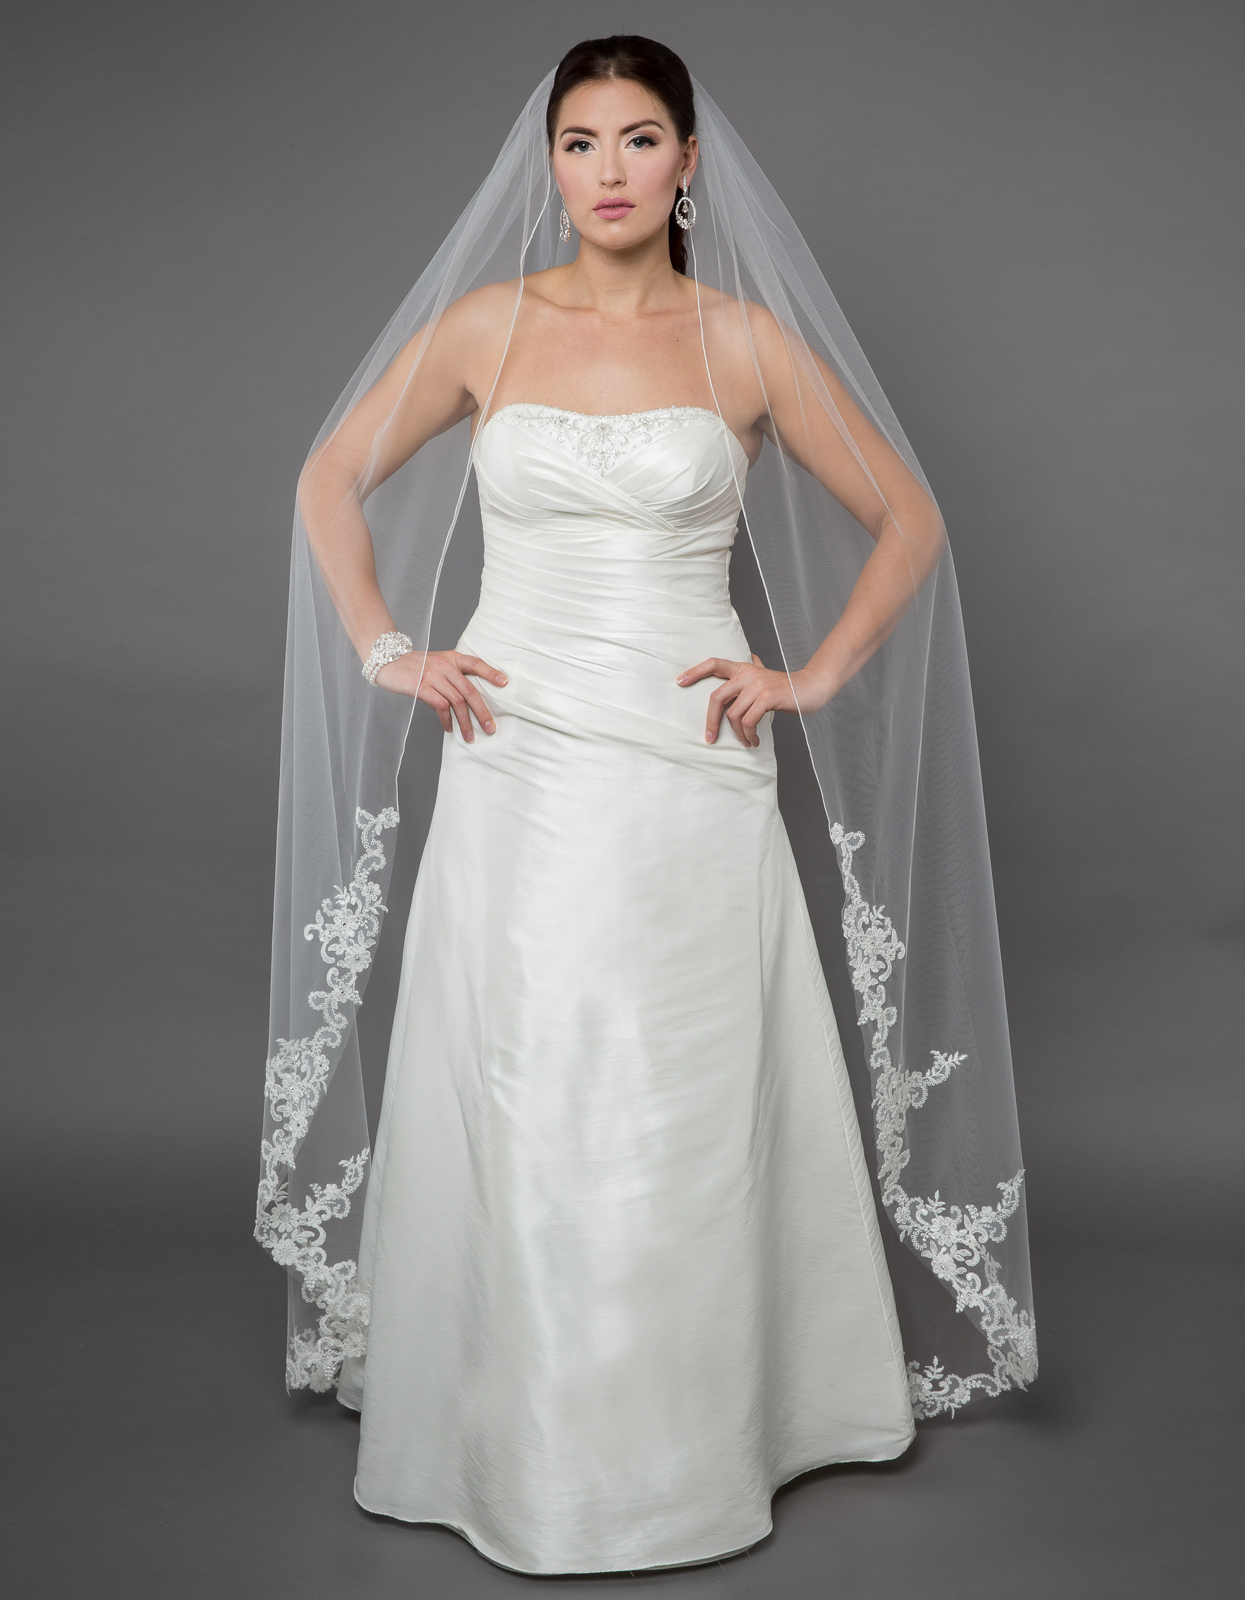 Bridal Classics Marquise Veil Collection MV-2381